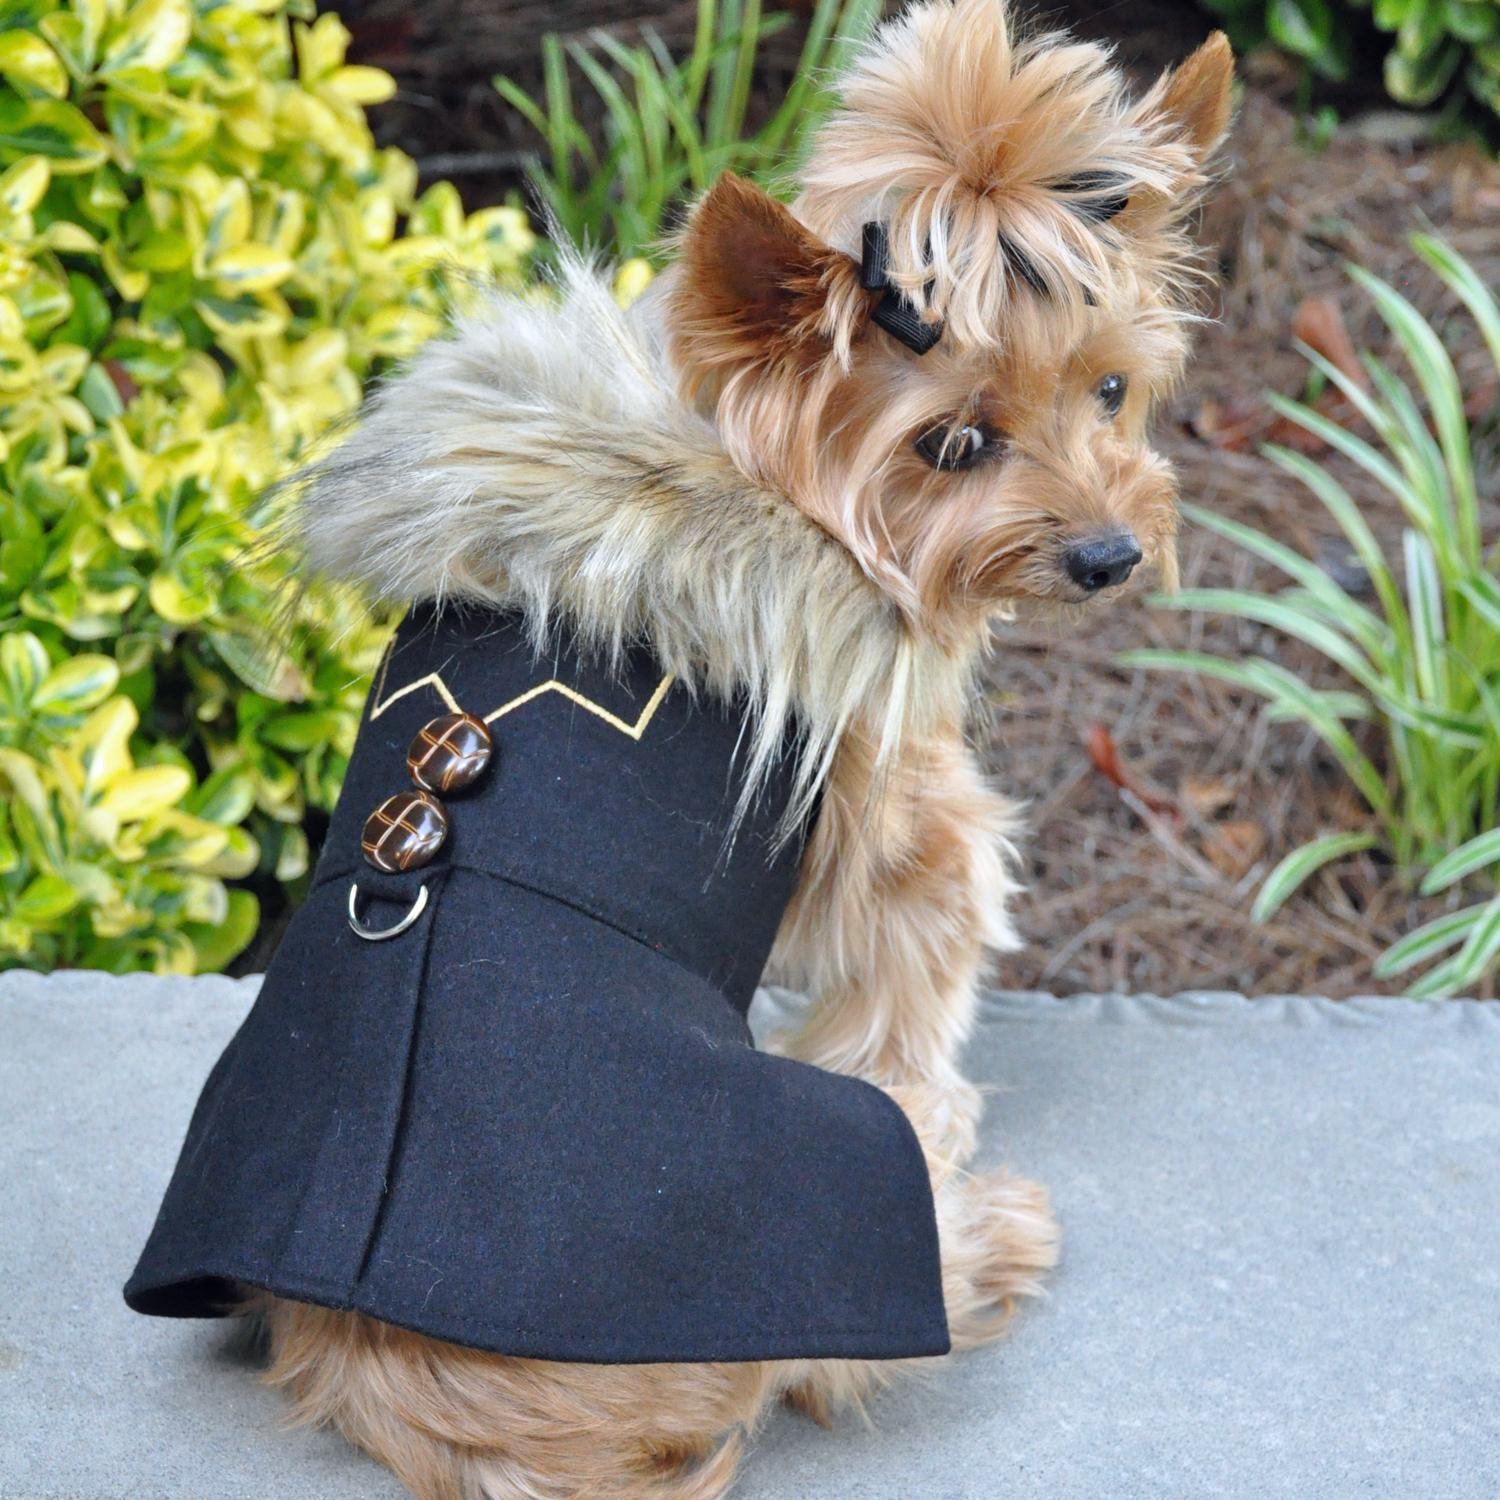 Wool Fur-Trimmed Dog Harness Coat by Doggie Design - Chevron